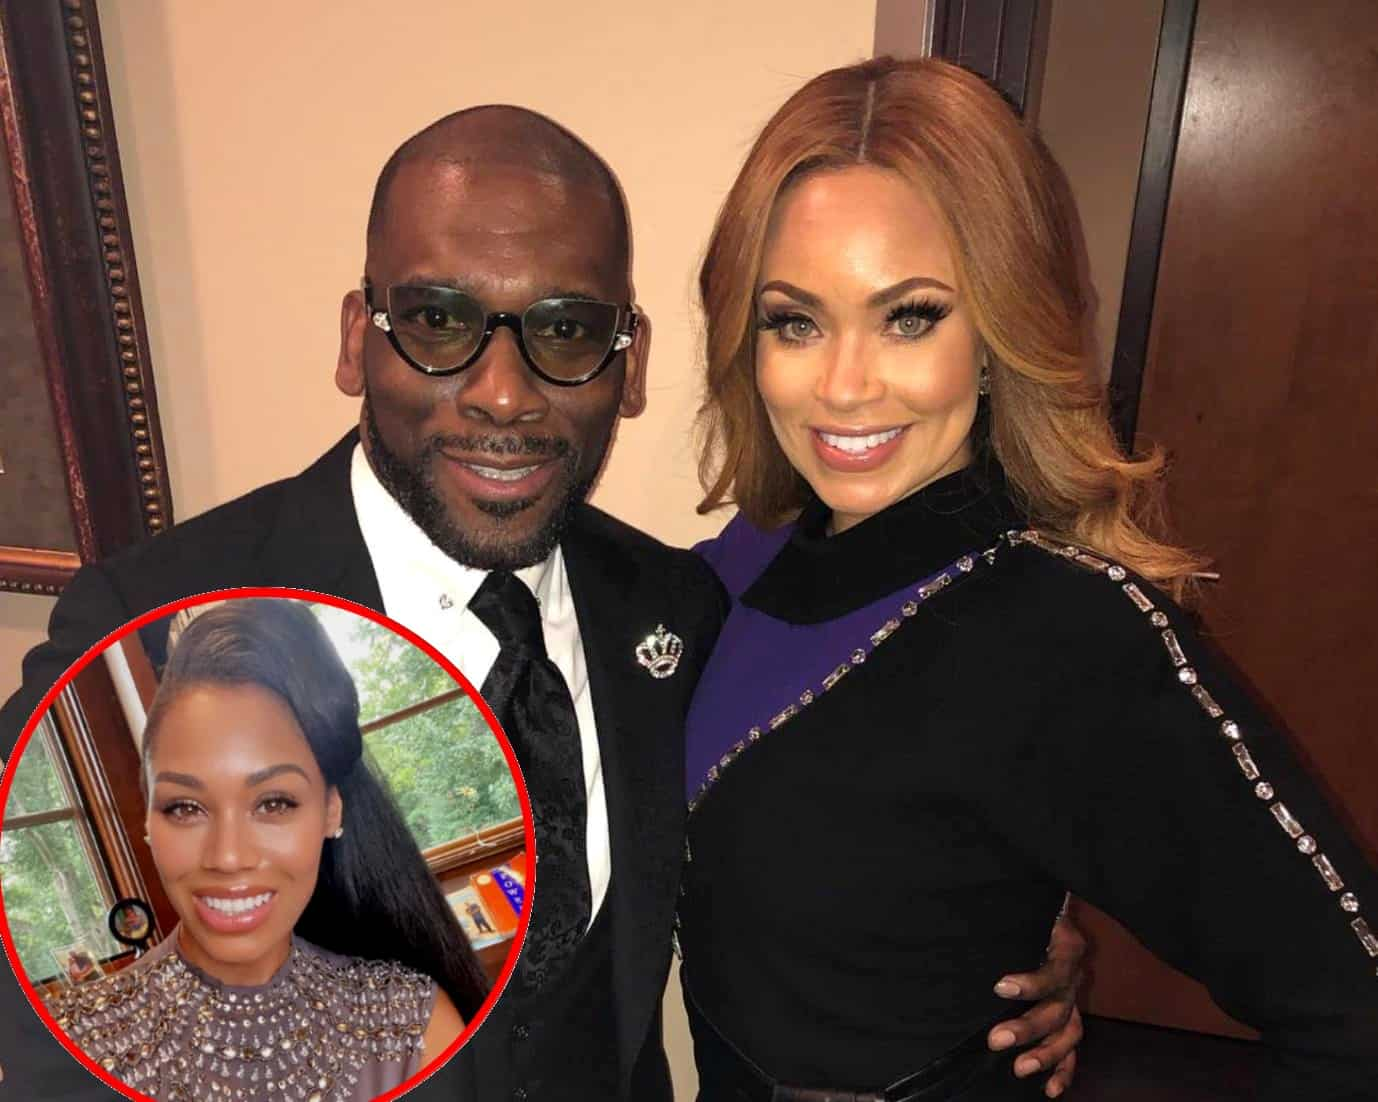 """Gizelle Bryant Shares Update on Relationship With Jamal Bryant Amid Cheating Rumors, Claims Monique Samuels' Allegations Were a """"Huge Deflection"""" From Her Behavior, Plus RHOP Reunion Live Viewing Thread!"""